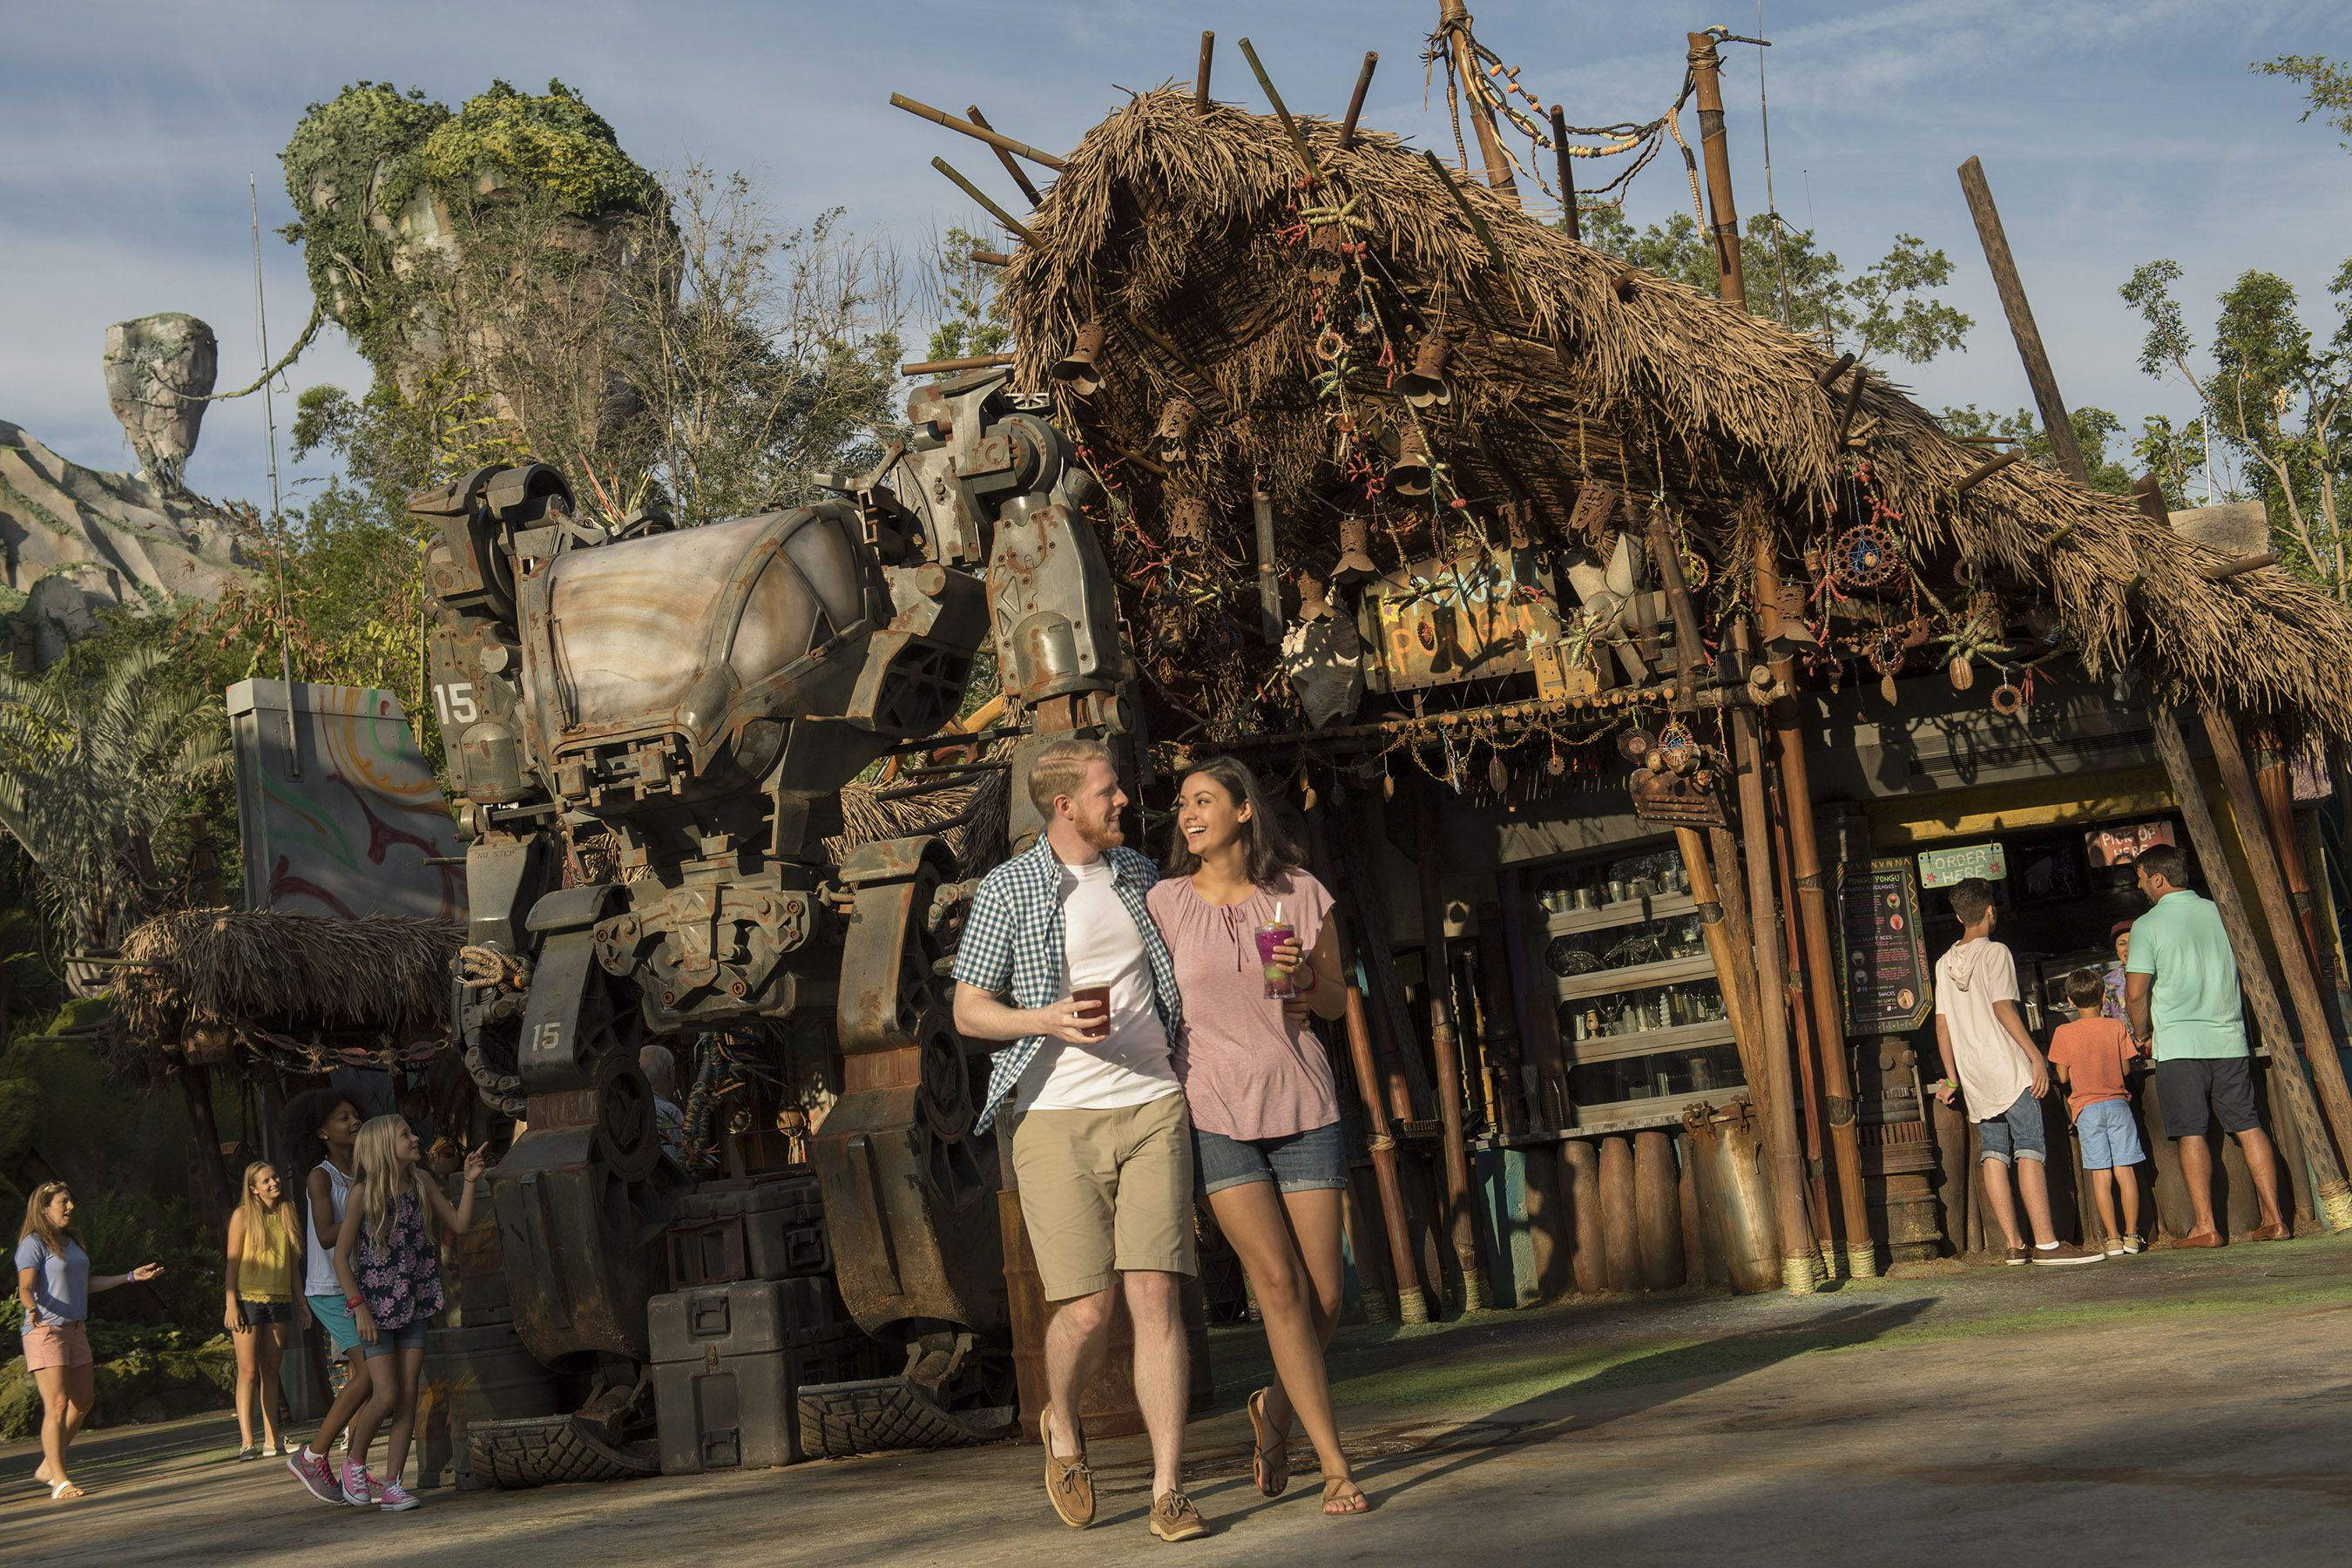 Pandora Exo-Carrier Utility Suit en Disneys Animal Kingdom